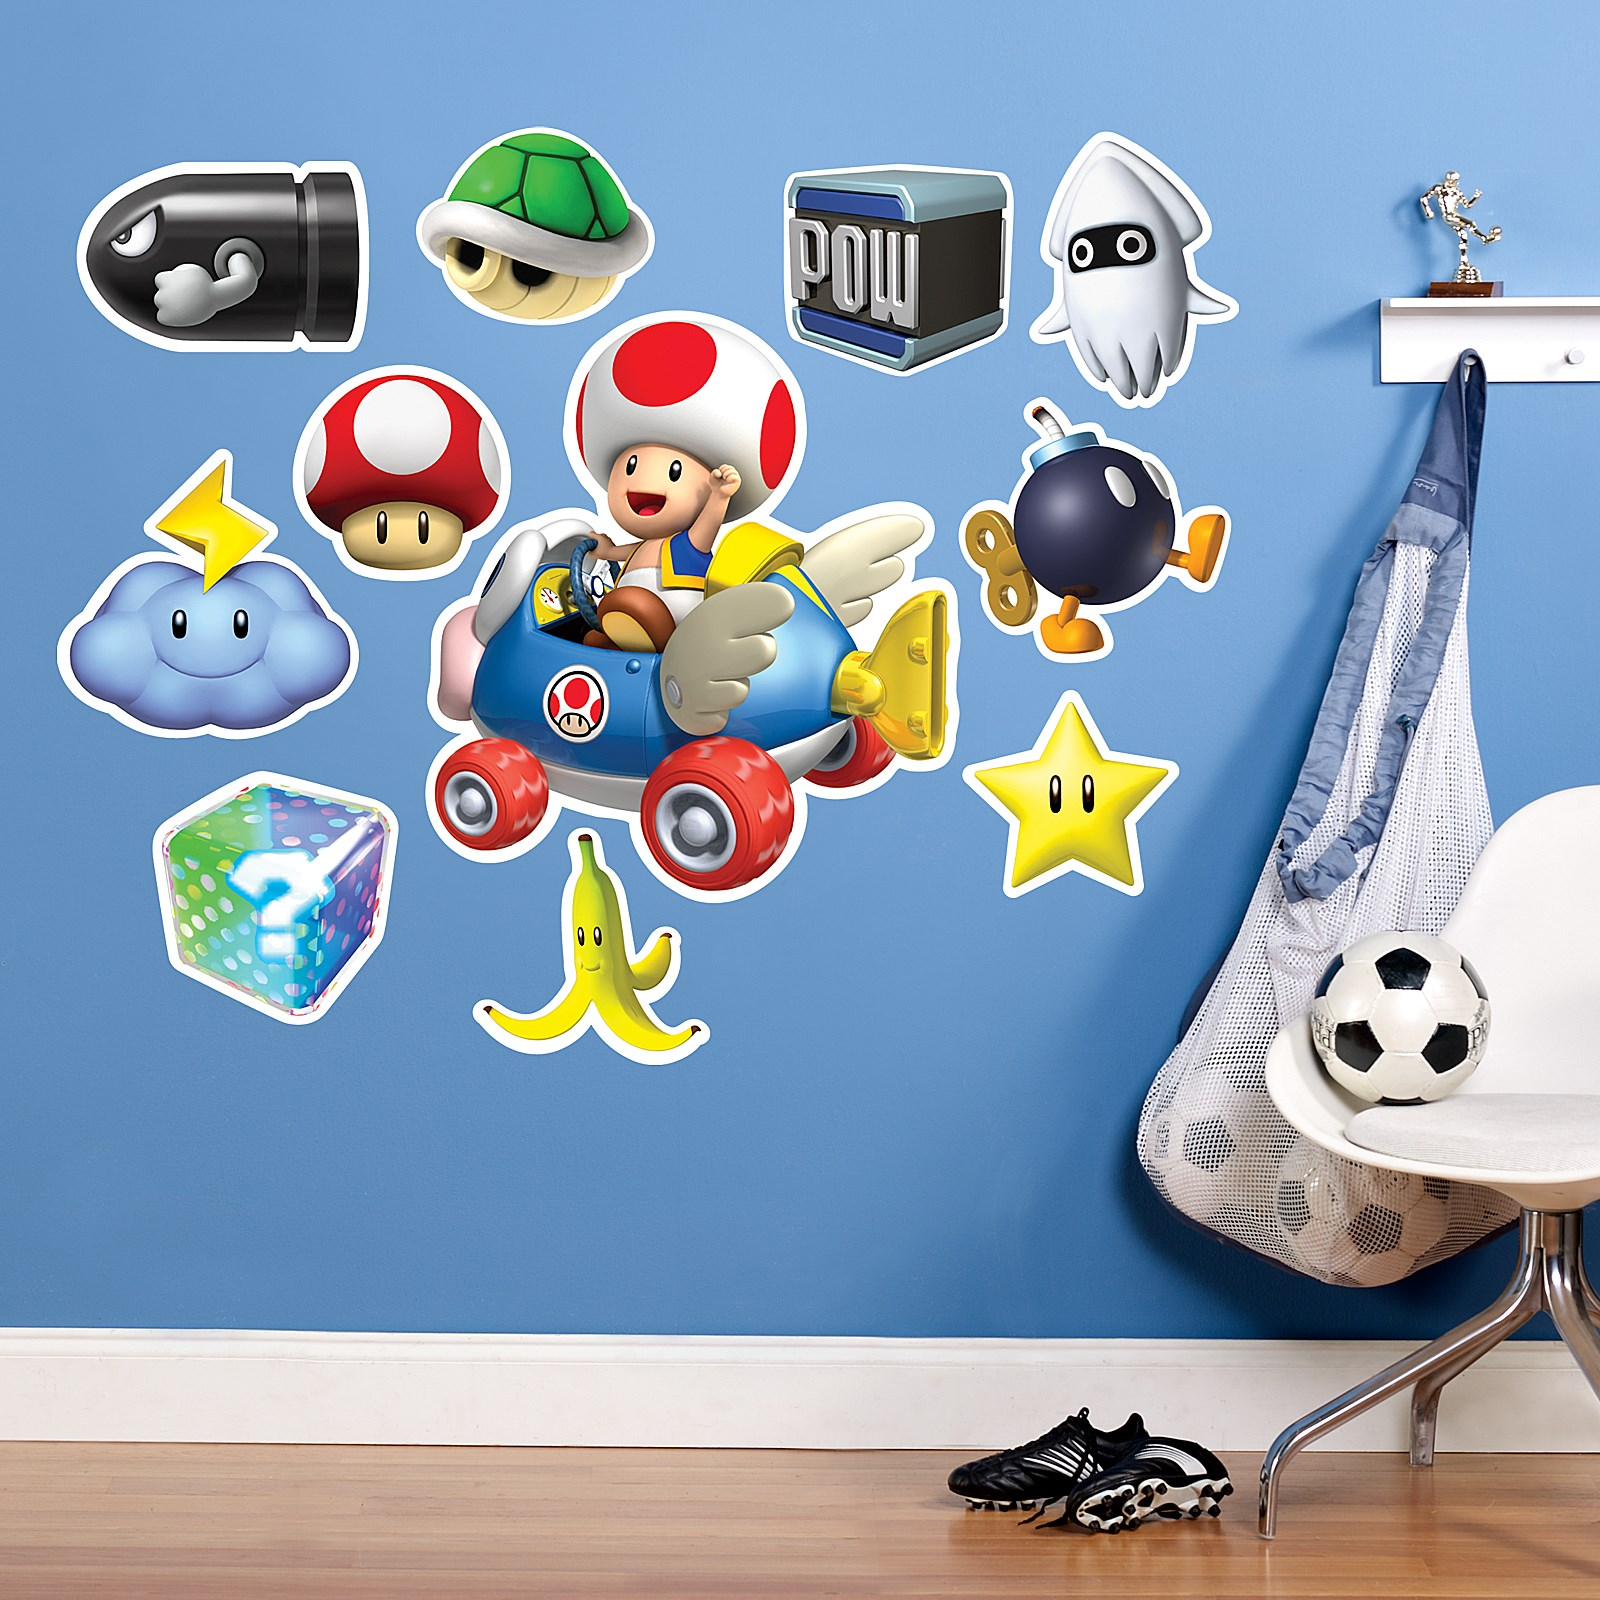 Mario kart wii toad giant wall decal - Super mario giant wall decals ...